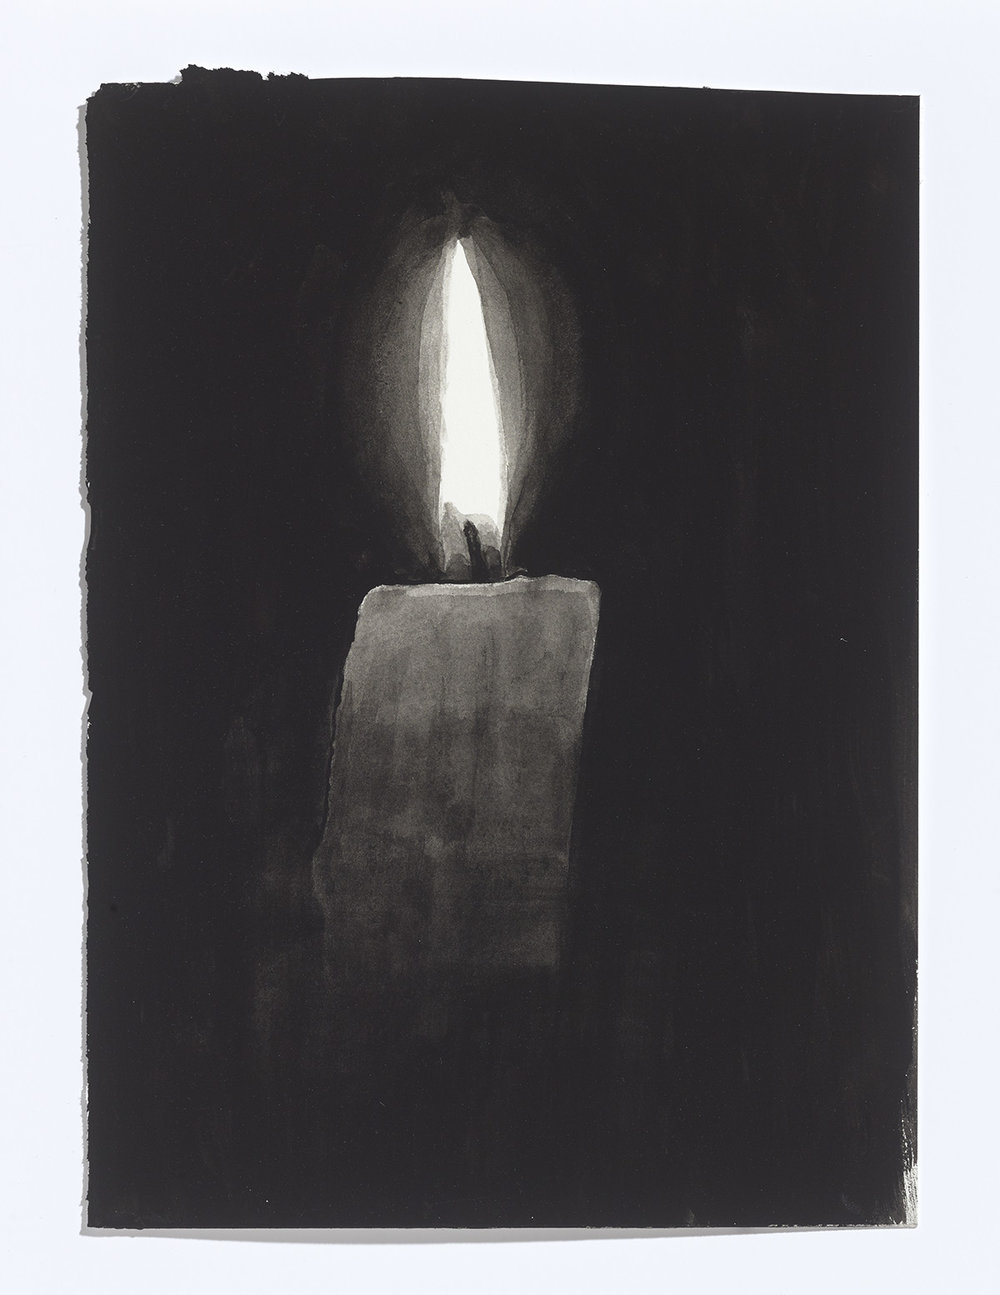 Candle, 2017, gouache on paper, 10 7/8th x 8 inches $1100 CAD $900 USD